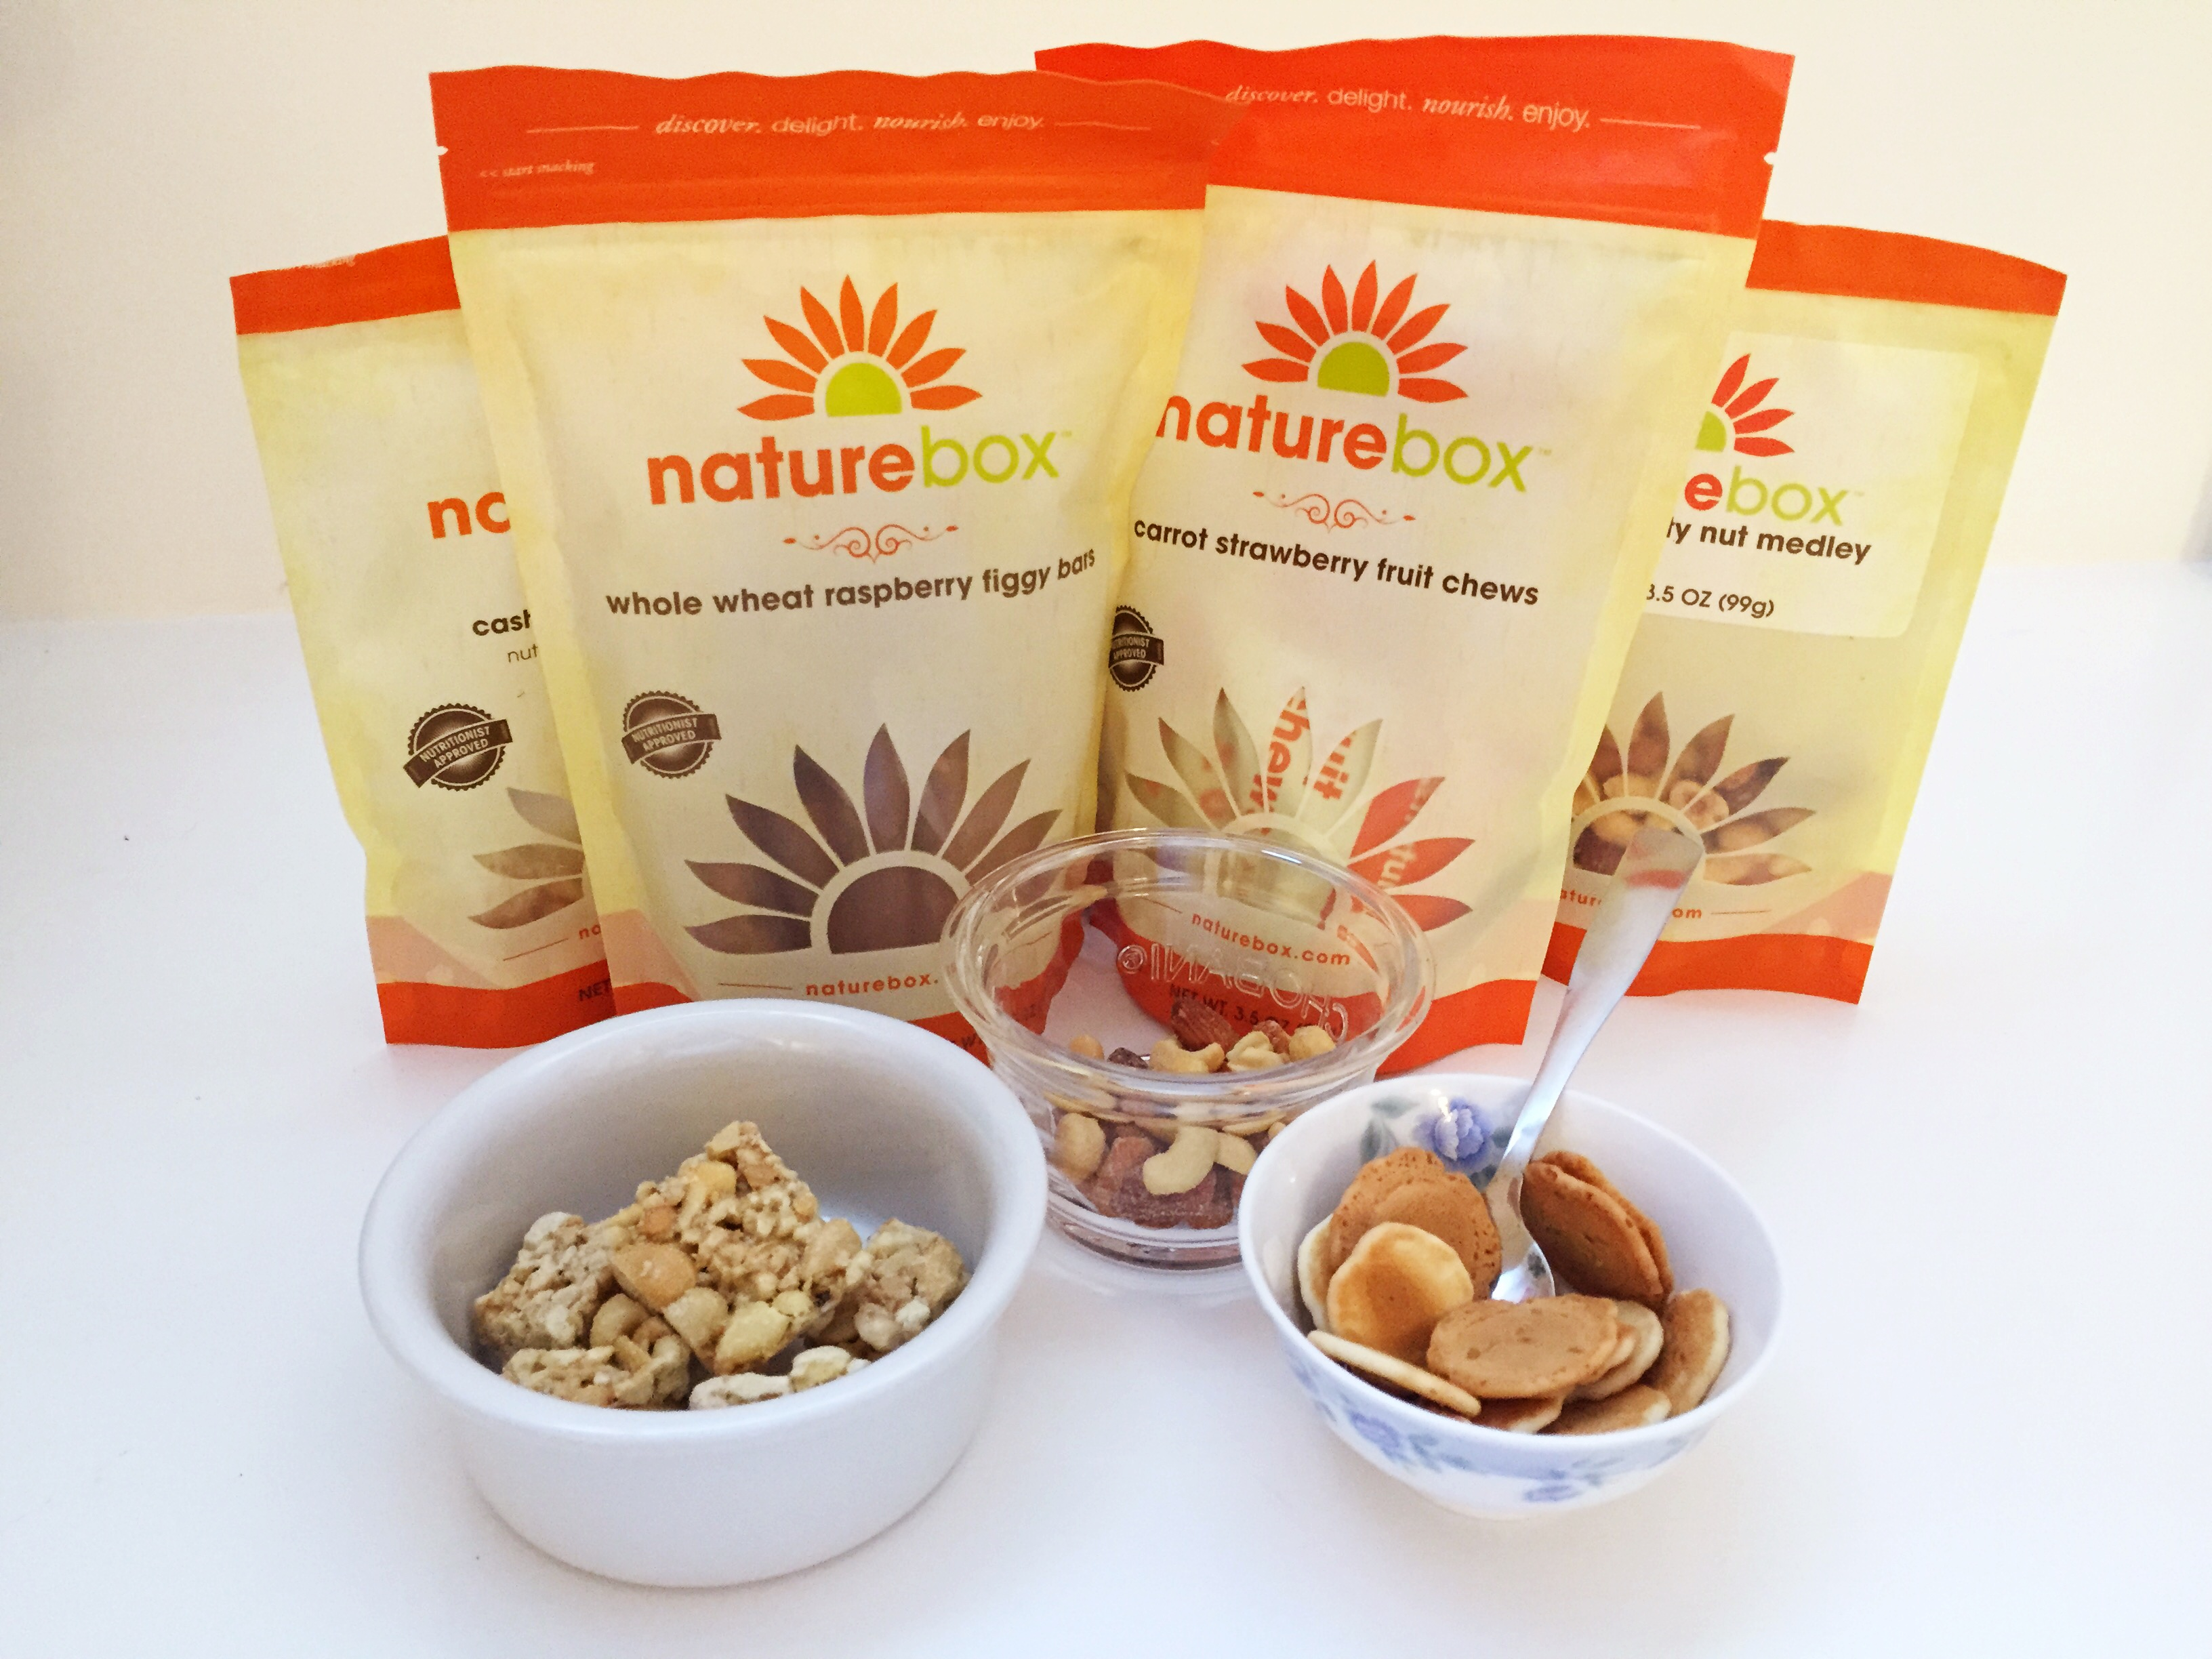 naturebox delivery snack snacks healthy service nature box gobble